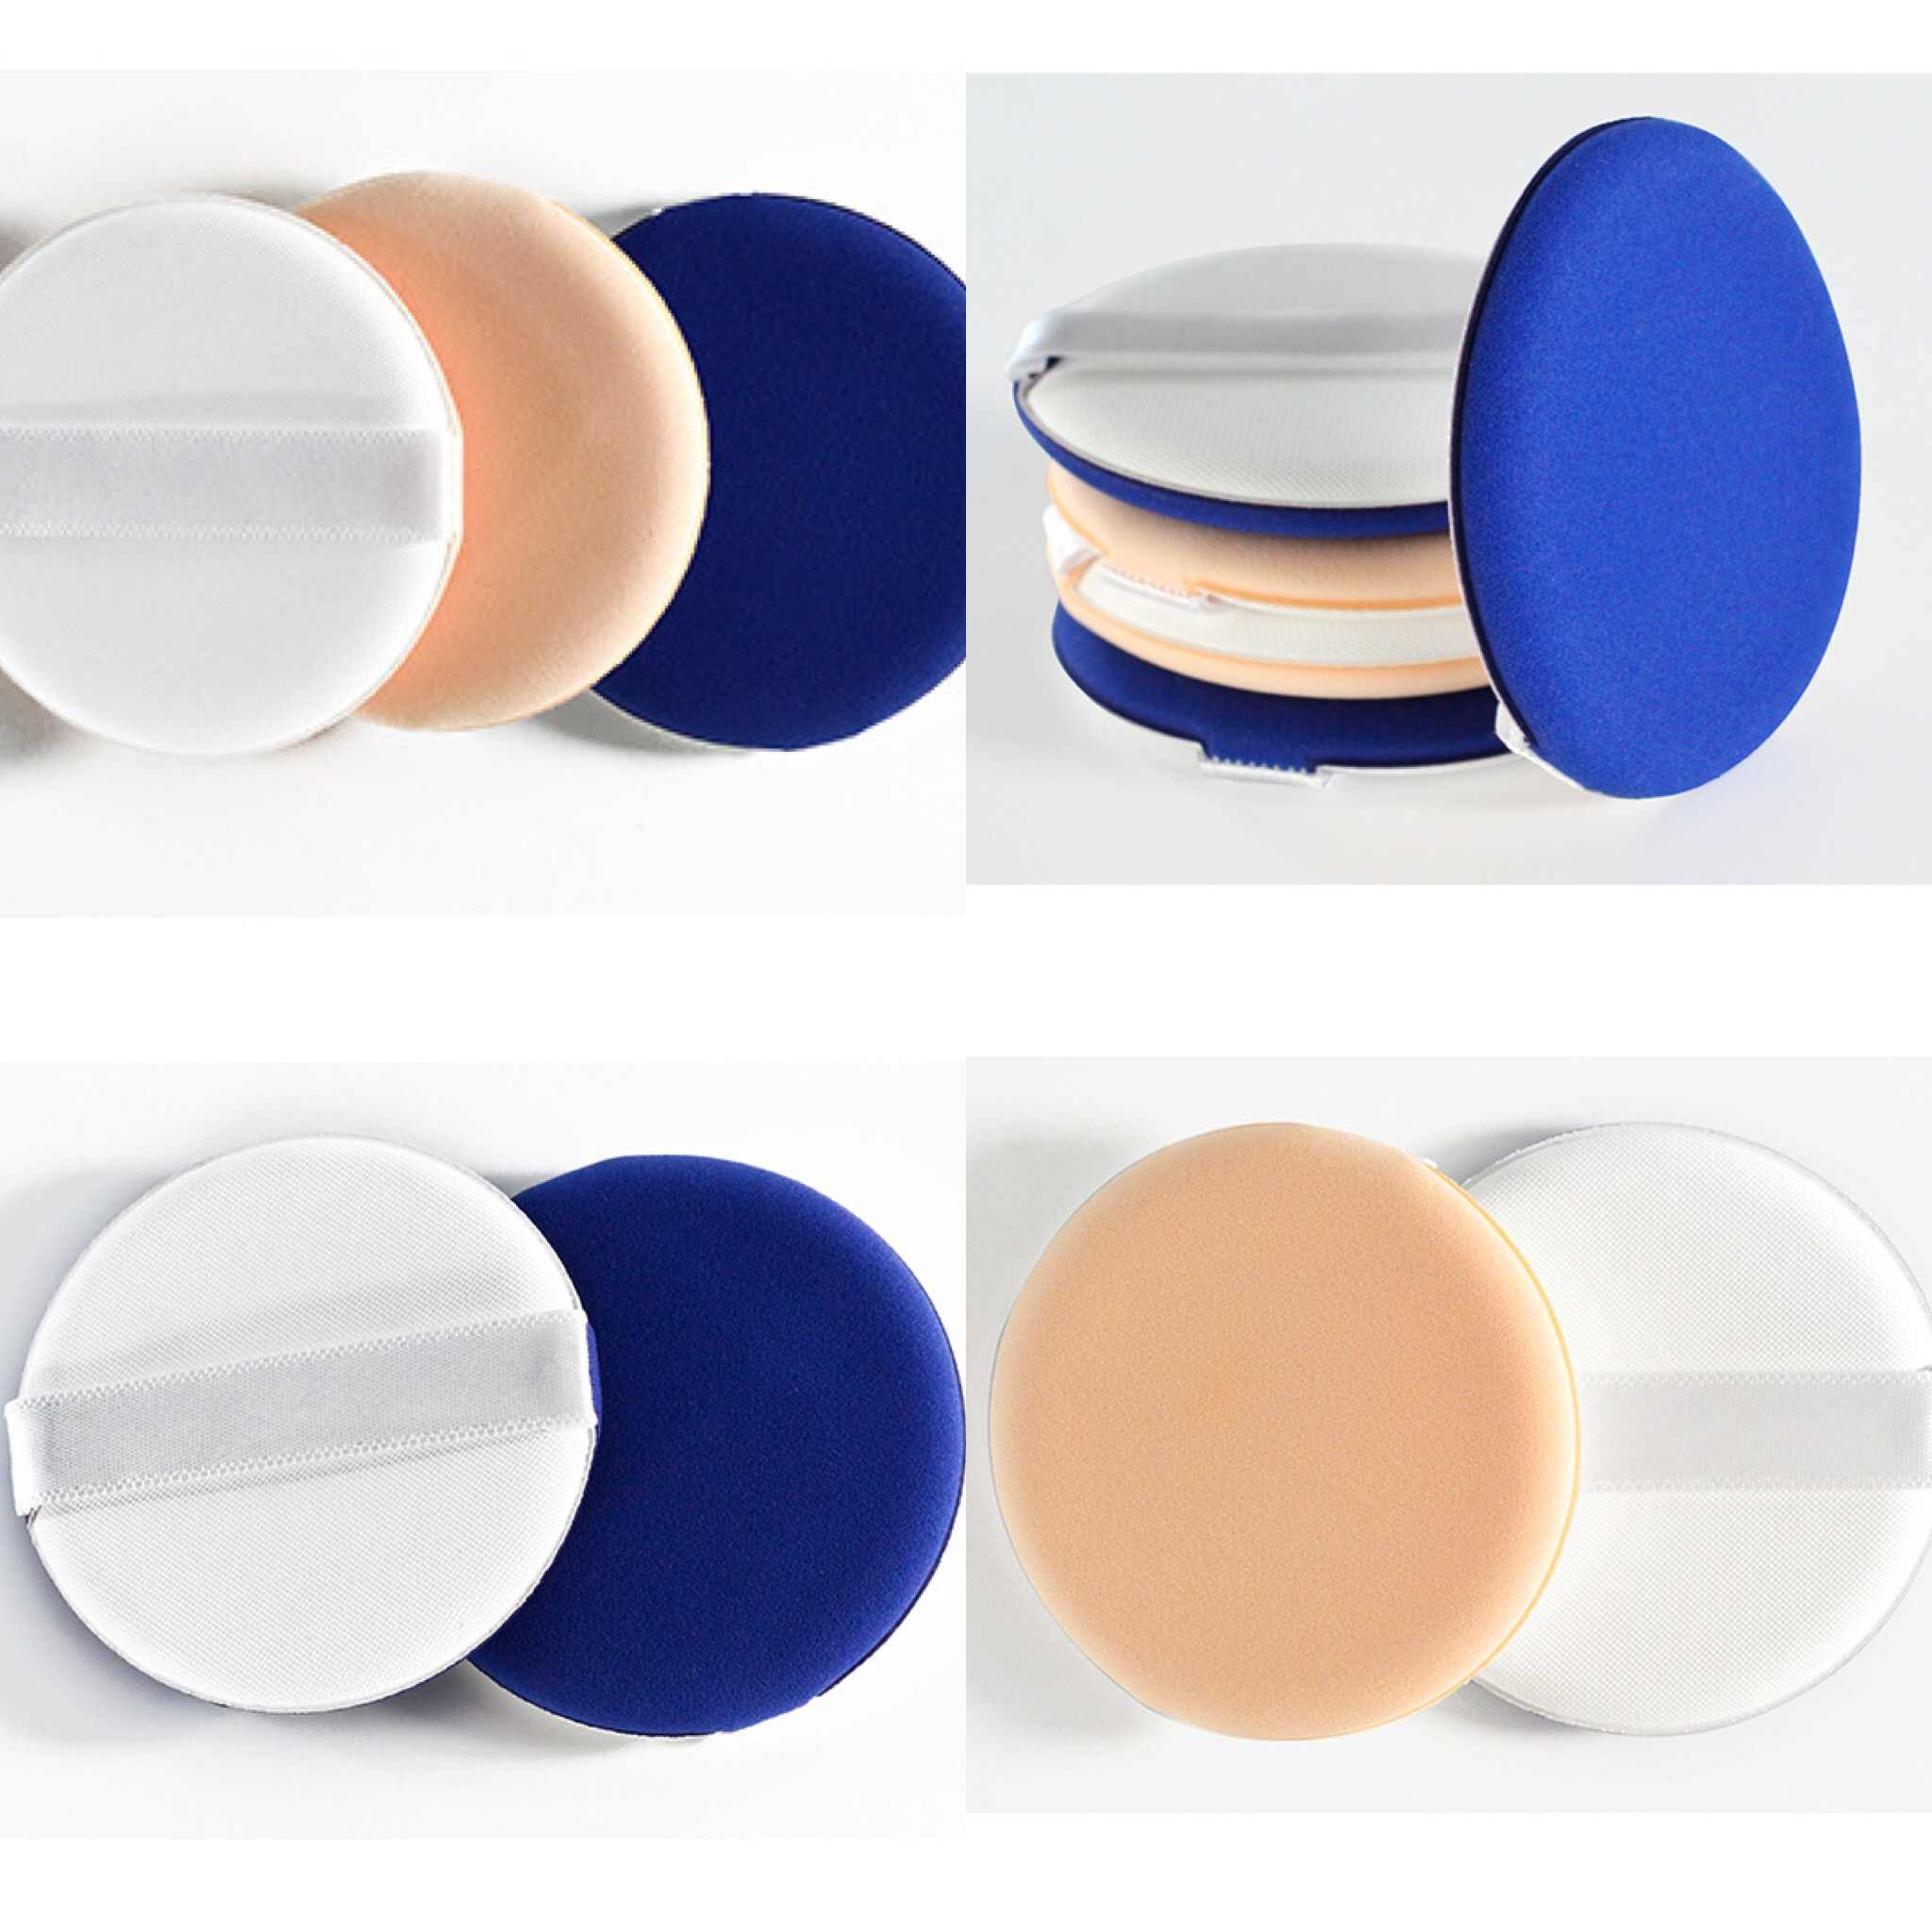 Halus Flawless Facial Powder Puff Kosmetik Spons Lembut Korea Keindahan Gaya Air Cushion Puff Makeup Foundation BB Cream